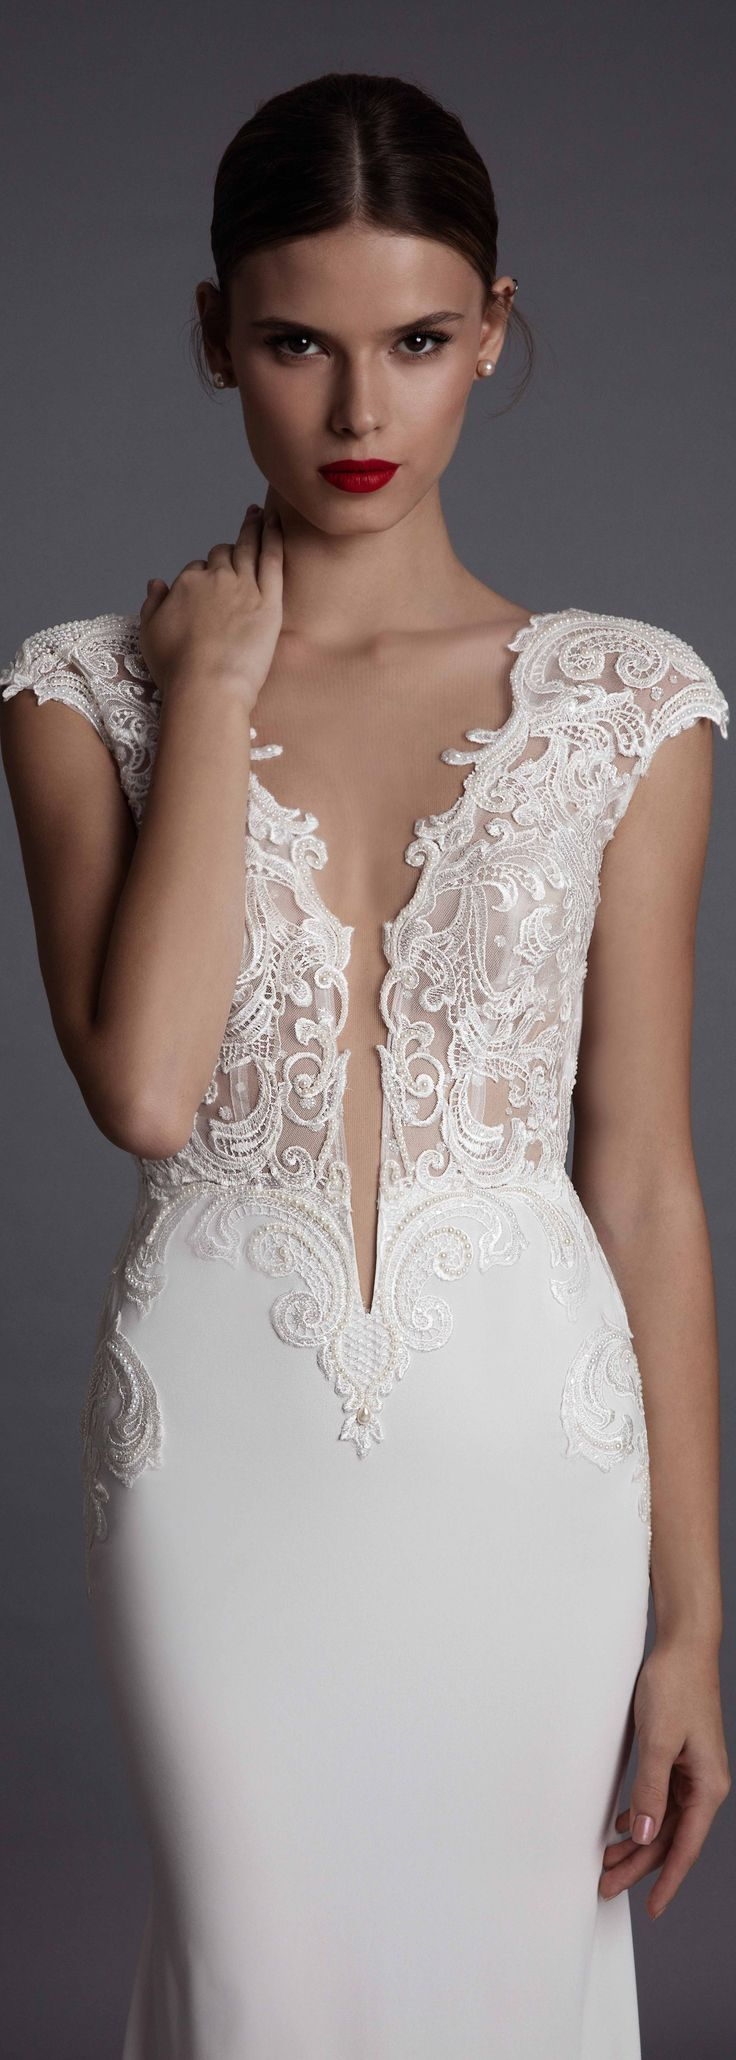 """AISHA"" - MUSE by berta. New bridal line from #BERTA <3"